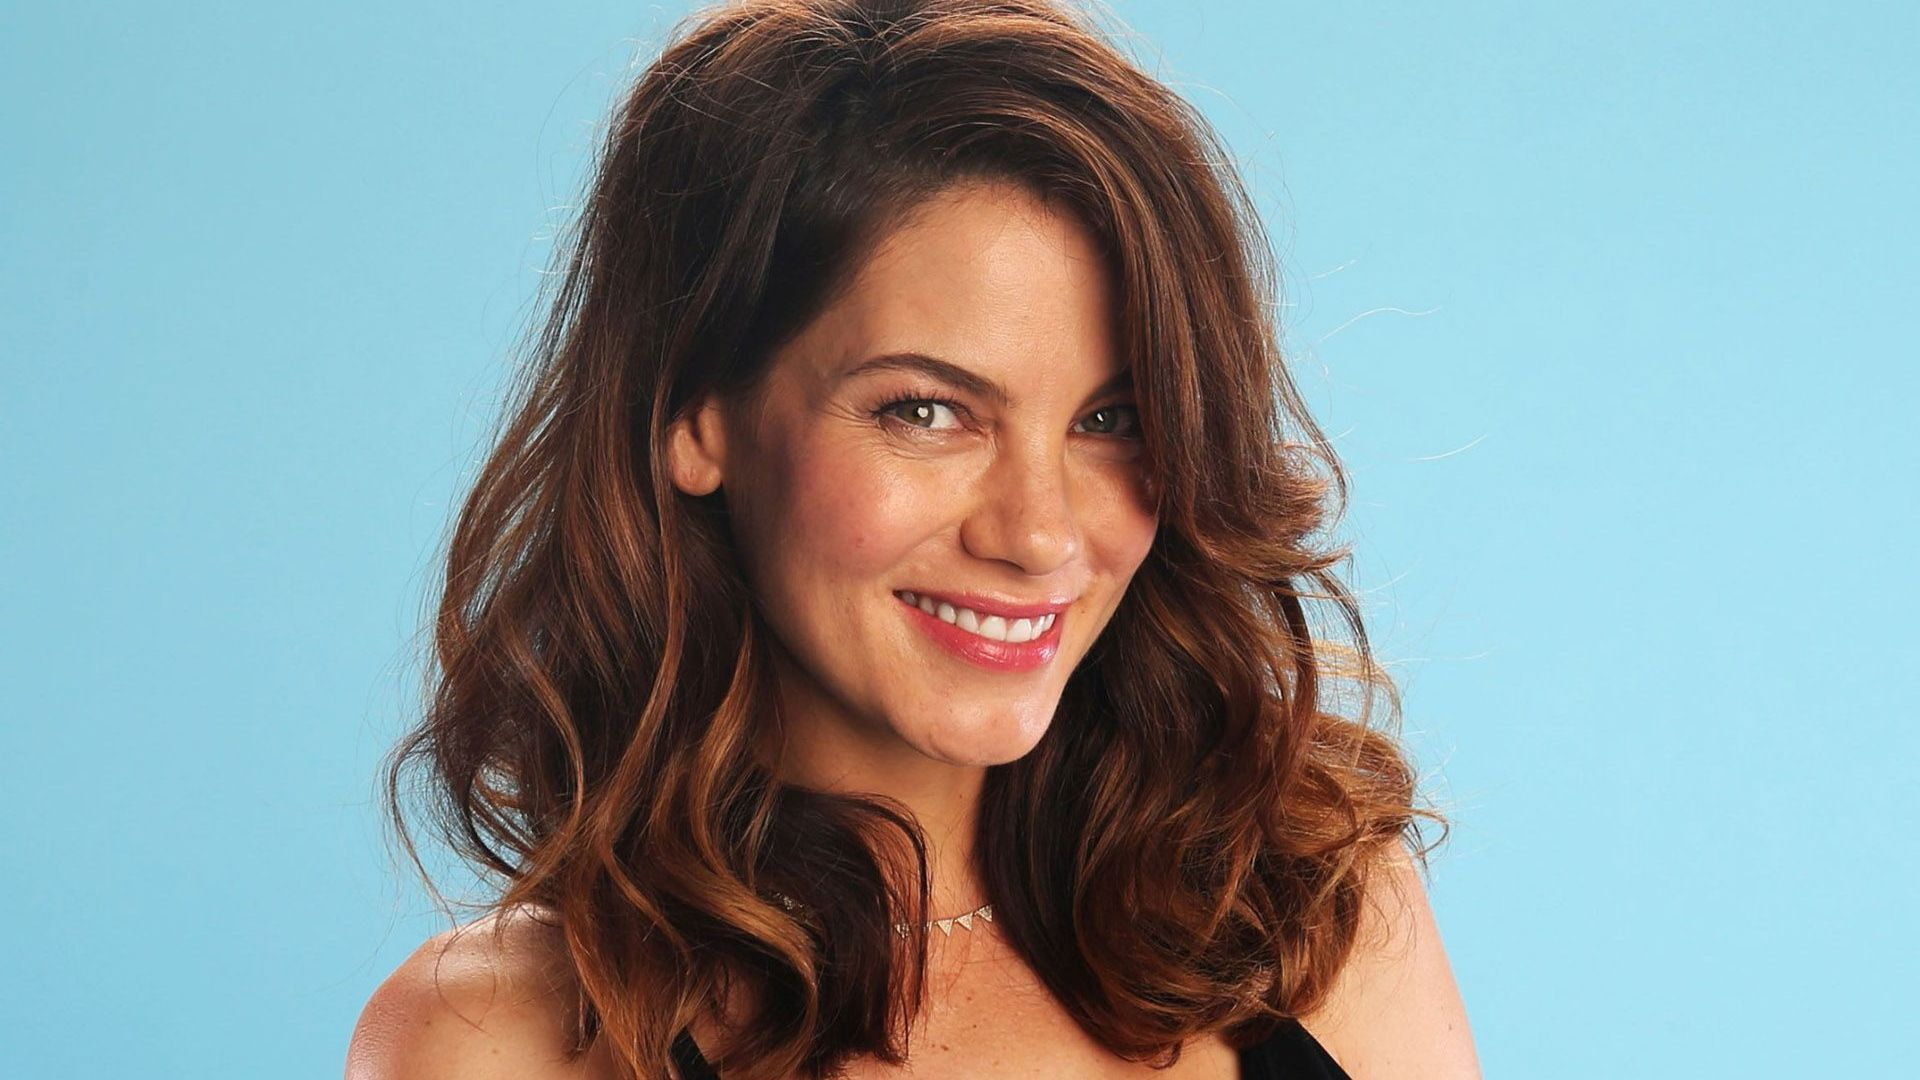 1920x1080 - Michelle Monaghan Wallpapers 26